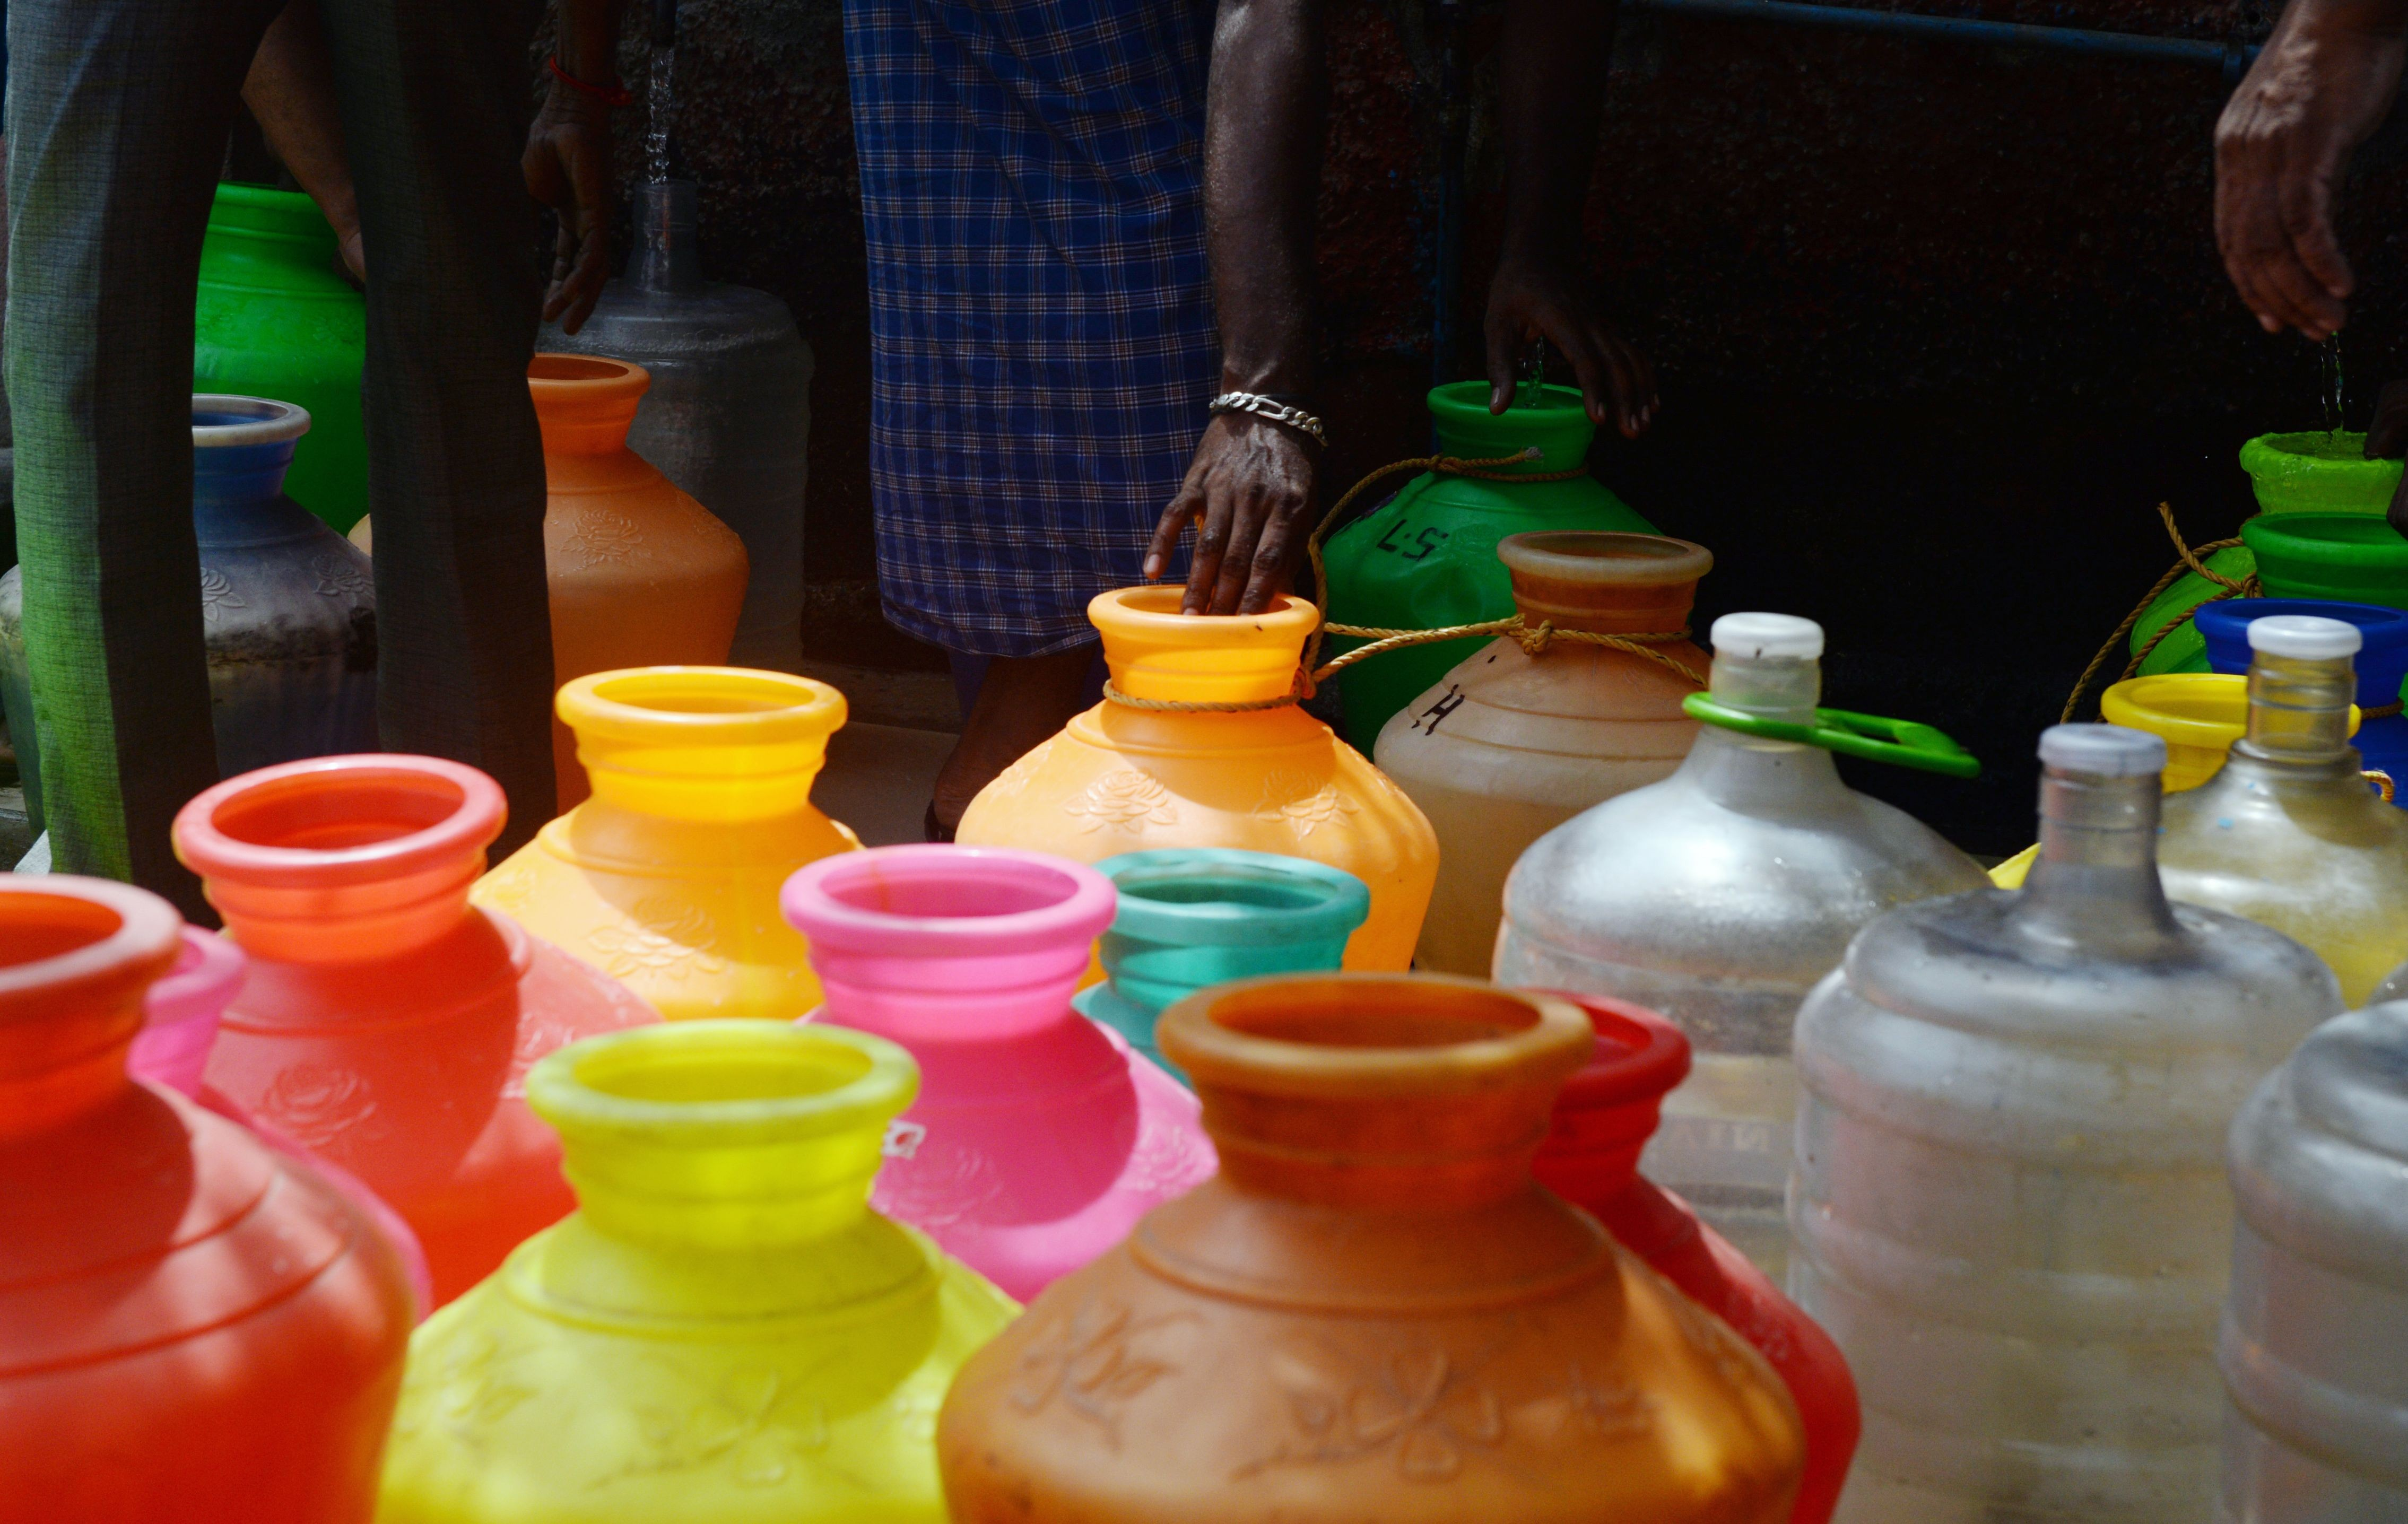 In drought-stricken Chennai, water is now more expensive